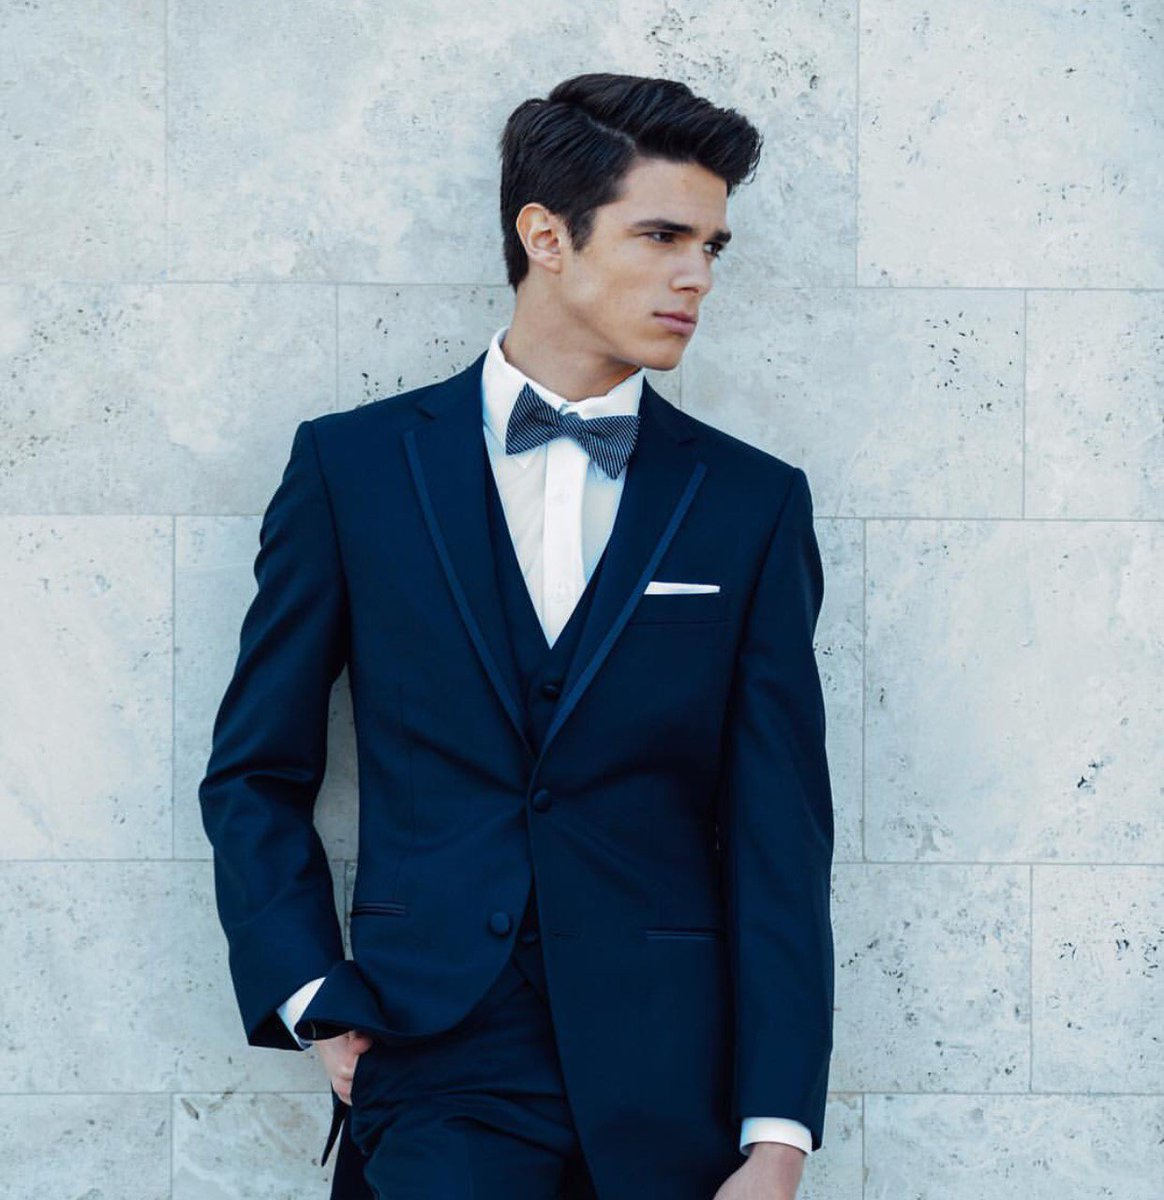 Save $40 on Tux (@DealOnTux) | Twitter